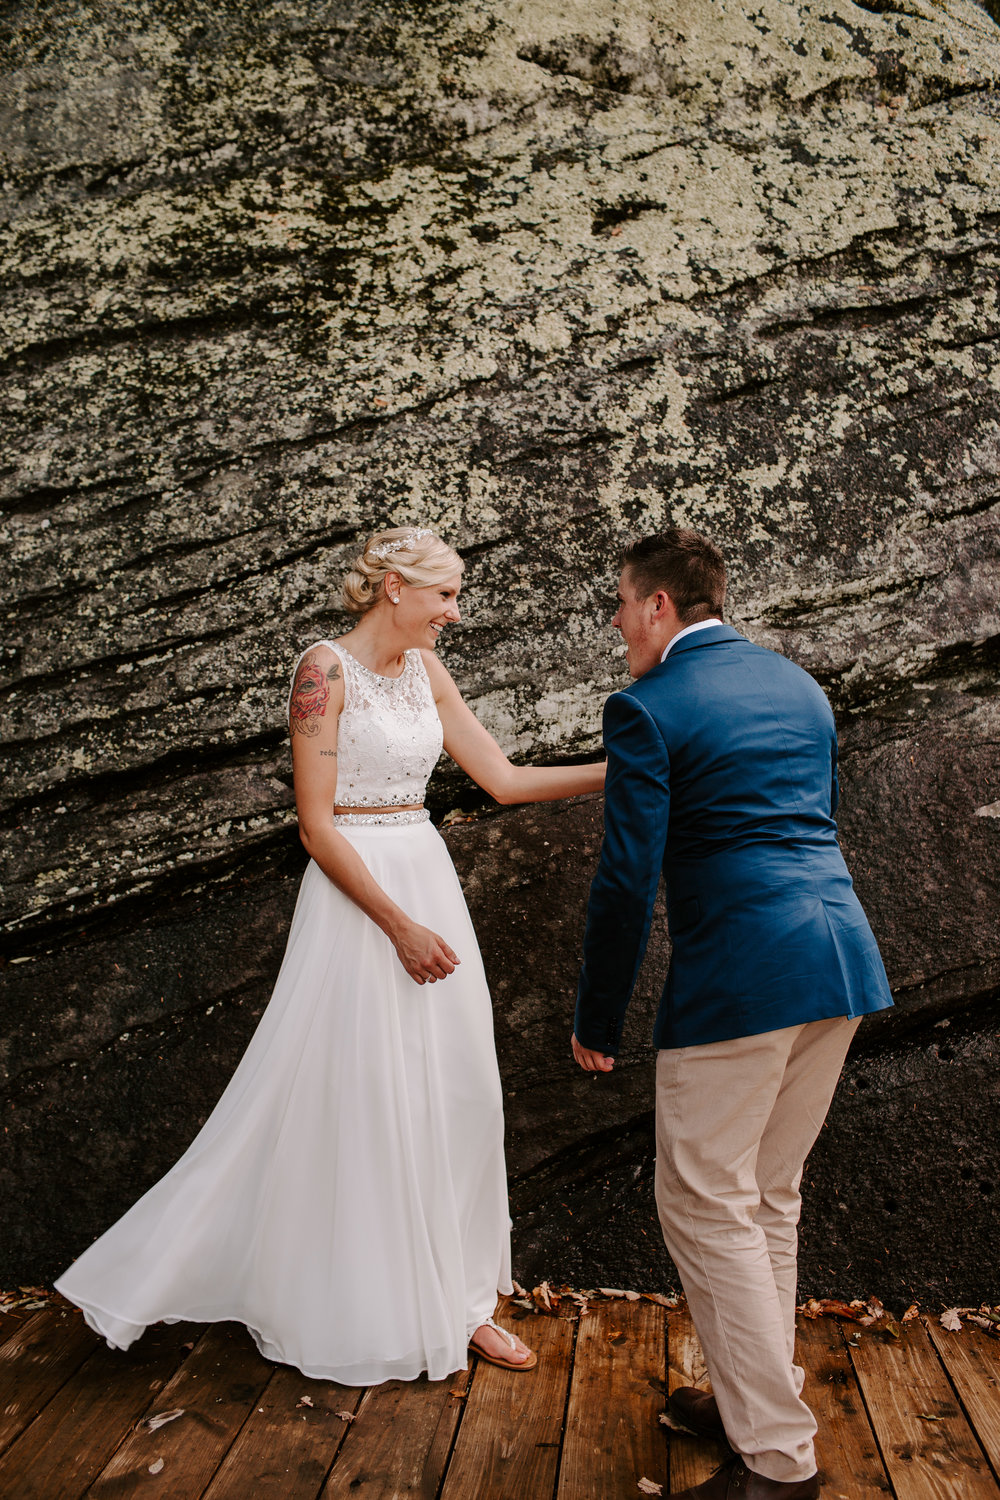 Miranda&braedon_ashevilleelopement (36 of 101).jpg